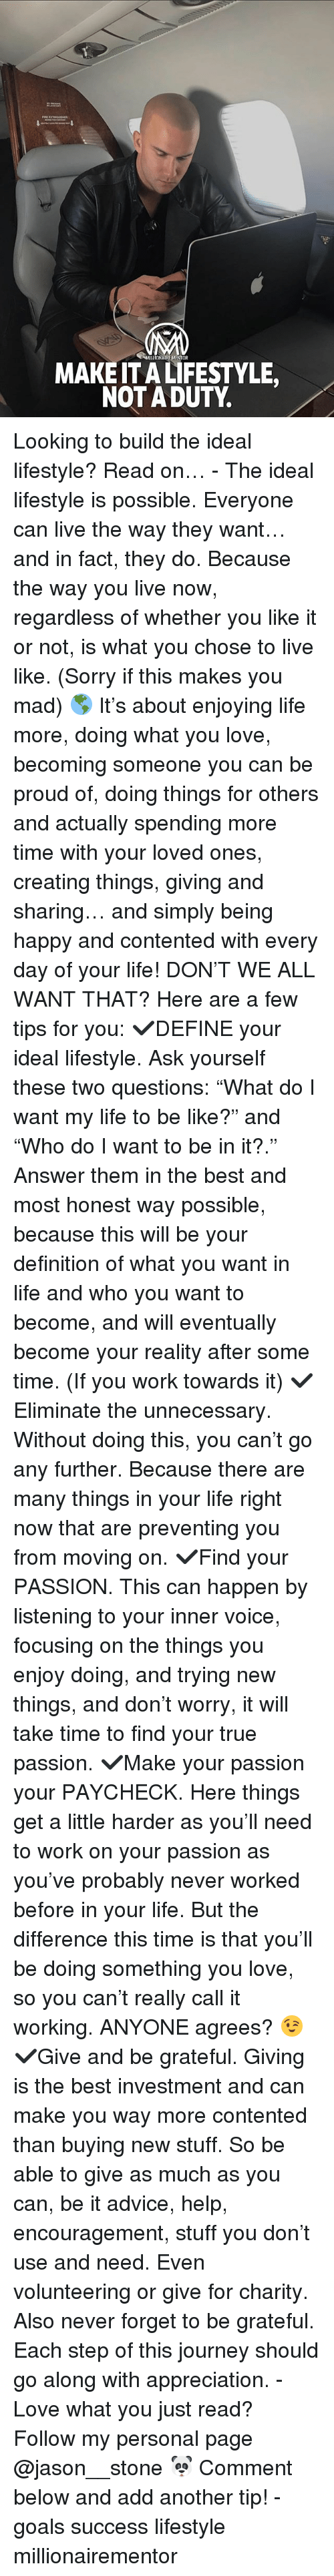 """Advice, Be Like, and Goals: IIONAIREMENTOR  MAKE IT A LIFESTYLE,  NOT A DUTY Looking to build the ideal lifestyle? Read on… - The ideal lifestyle is possible. Everyone can live the way they want… and in fact, they do. Because the way you live now, regardless of whether you like it or not, is what you chose to live like. (Sorry if this makes you mad) 🌎 It's about enjoying life more, doing what you love, becoming someone you can be proud of, doing things for others and actually spending more time with your loved ones, creating things, giving and sharing… and simply being happy and contented with every day of your life! DON'T WE ALL WANT THAT? Here are a few tips for you: ✔️DEFINE your ideal lifestyle. Ask yourself these two questions: """"What do I want my life to be like?"""" and """"Who do I want to be in it?."""" Answer them in the best and most honest way possible, because this will be your definition of what you want in life and who you want to become, and will eventually become your reality after some time. (If you work towards it) ✔️Eliminate the unnecessary. Without doing this, you can't go any further. Because there are many things in your life right now that are preventing you from moving on. ✔️Find your PASSION. This can happen by listening to your inner voice, focusing on the things you enjoy doing, and trying new things, and don't worry, it will take time to find your true passion. ✔️Make your passion your PAYCHECK. Here things get a little harder as you'll need to work on your passion as you've probably never worked before in your life. But the difference this time is that you'll be doing something you love, so you can't really call it working. ANYONE agrees? 😉 ✔️Give and be grateful. Giving is the best investment and can make you way more contented than buying new stuff. So be able to give as much as you can, be it advice, help, encouragement, stuff you don't use and need. Even volunteering or give for charity. Also never forget to be grateful. Each step of this jo"""